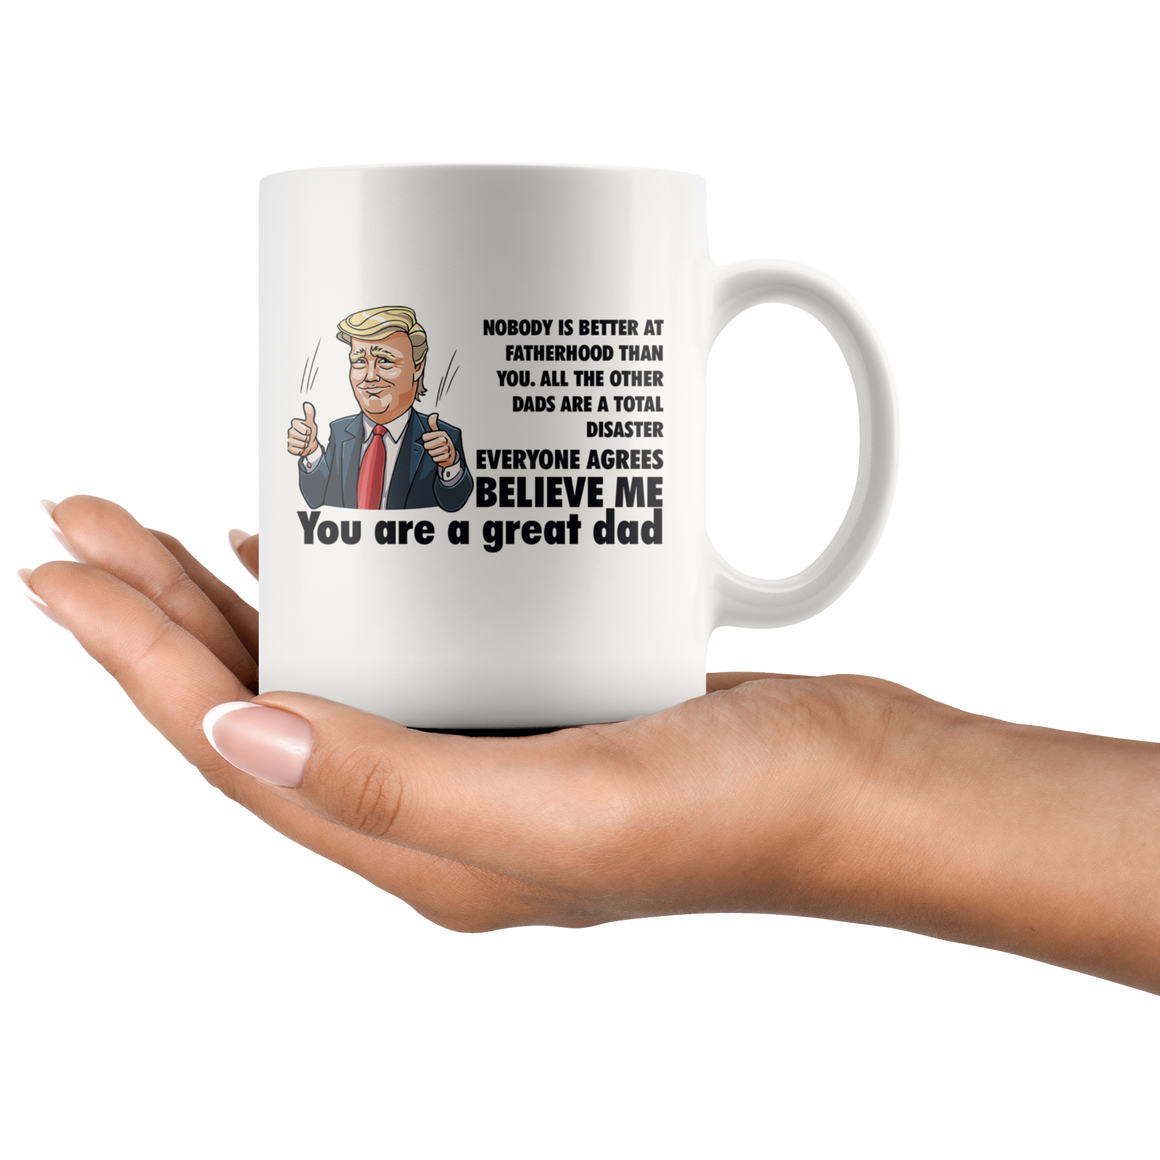 Believe me you are a great dad mug